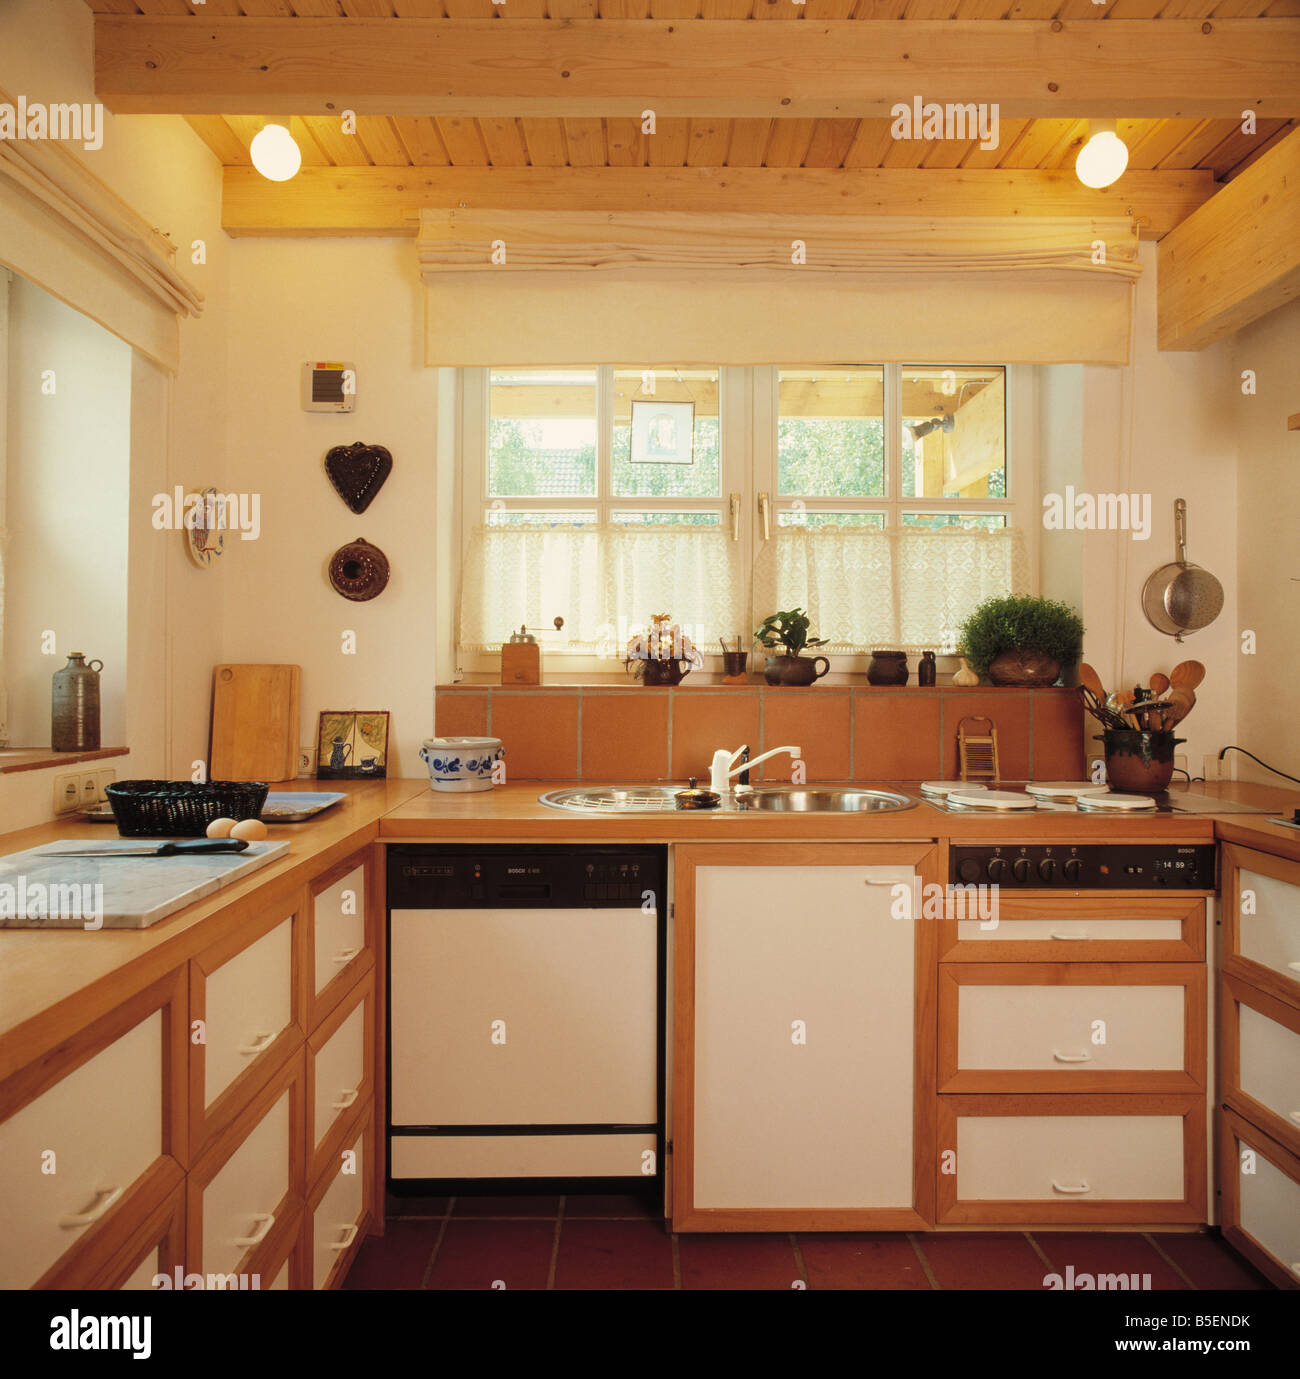 Lighting On Wooden Ceiling In Small Kitchen With Sink And Dishwasher In  Simple Fitted Unit Below Window With Lace Curtains